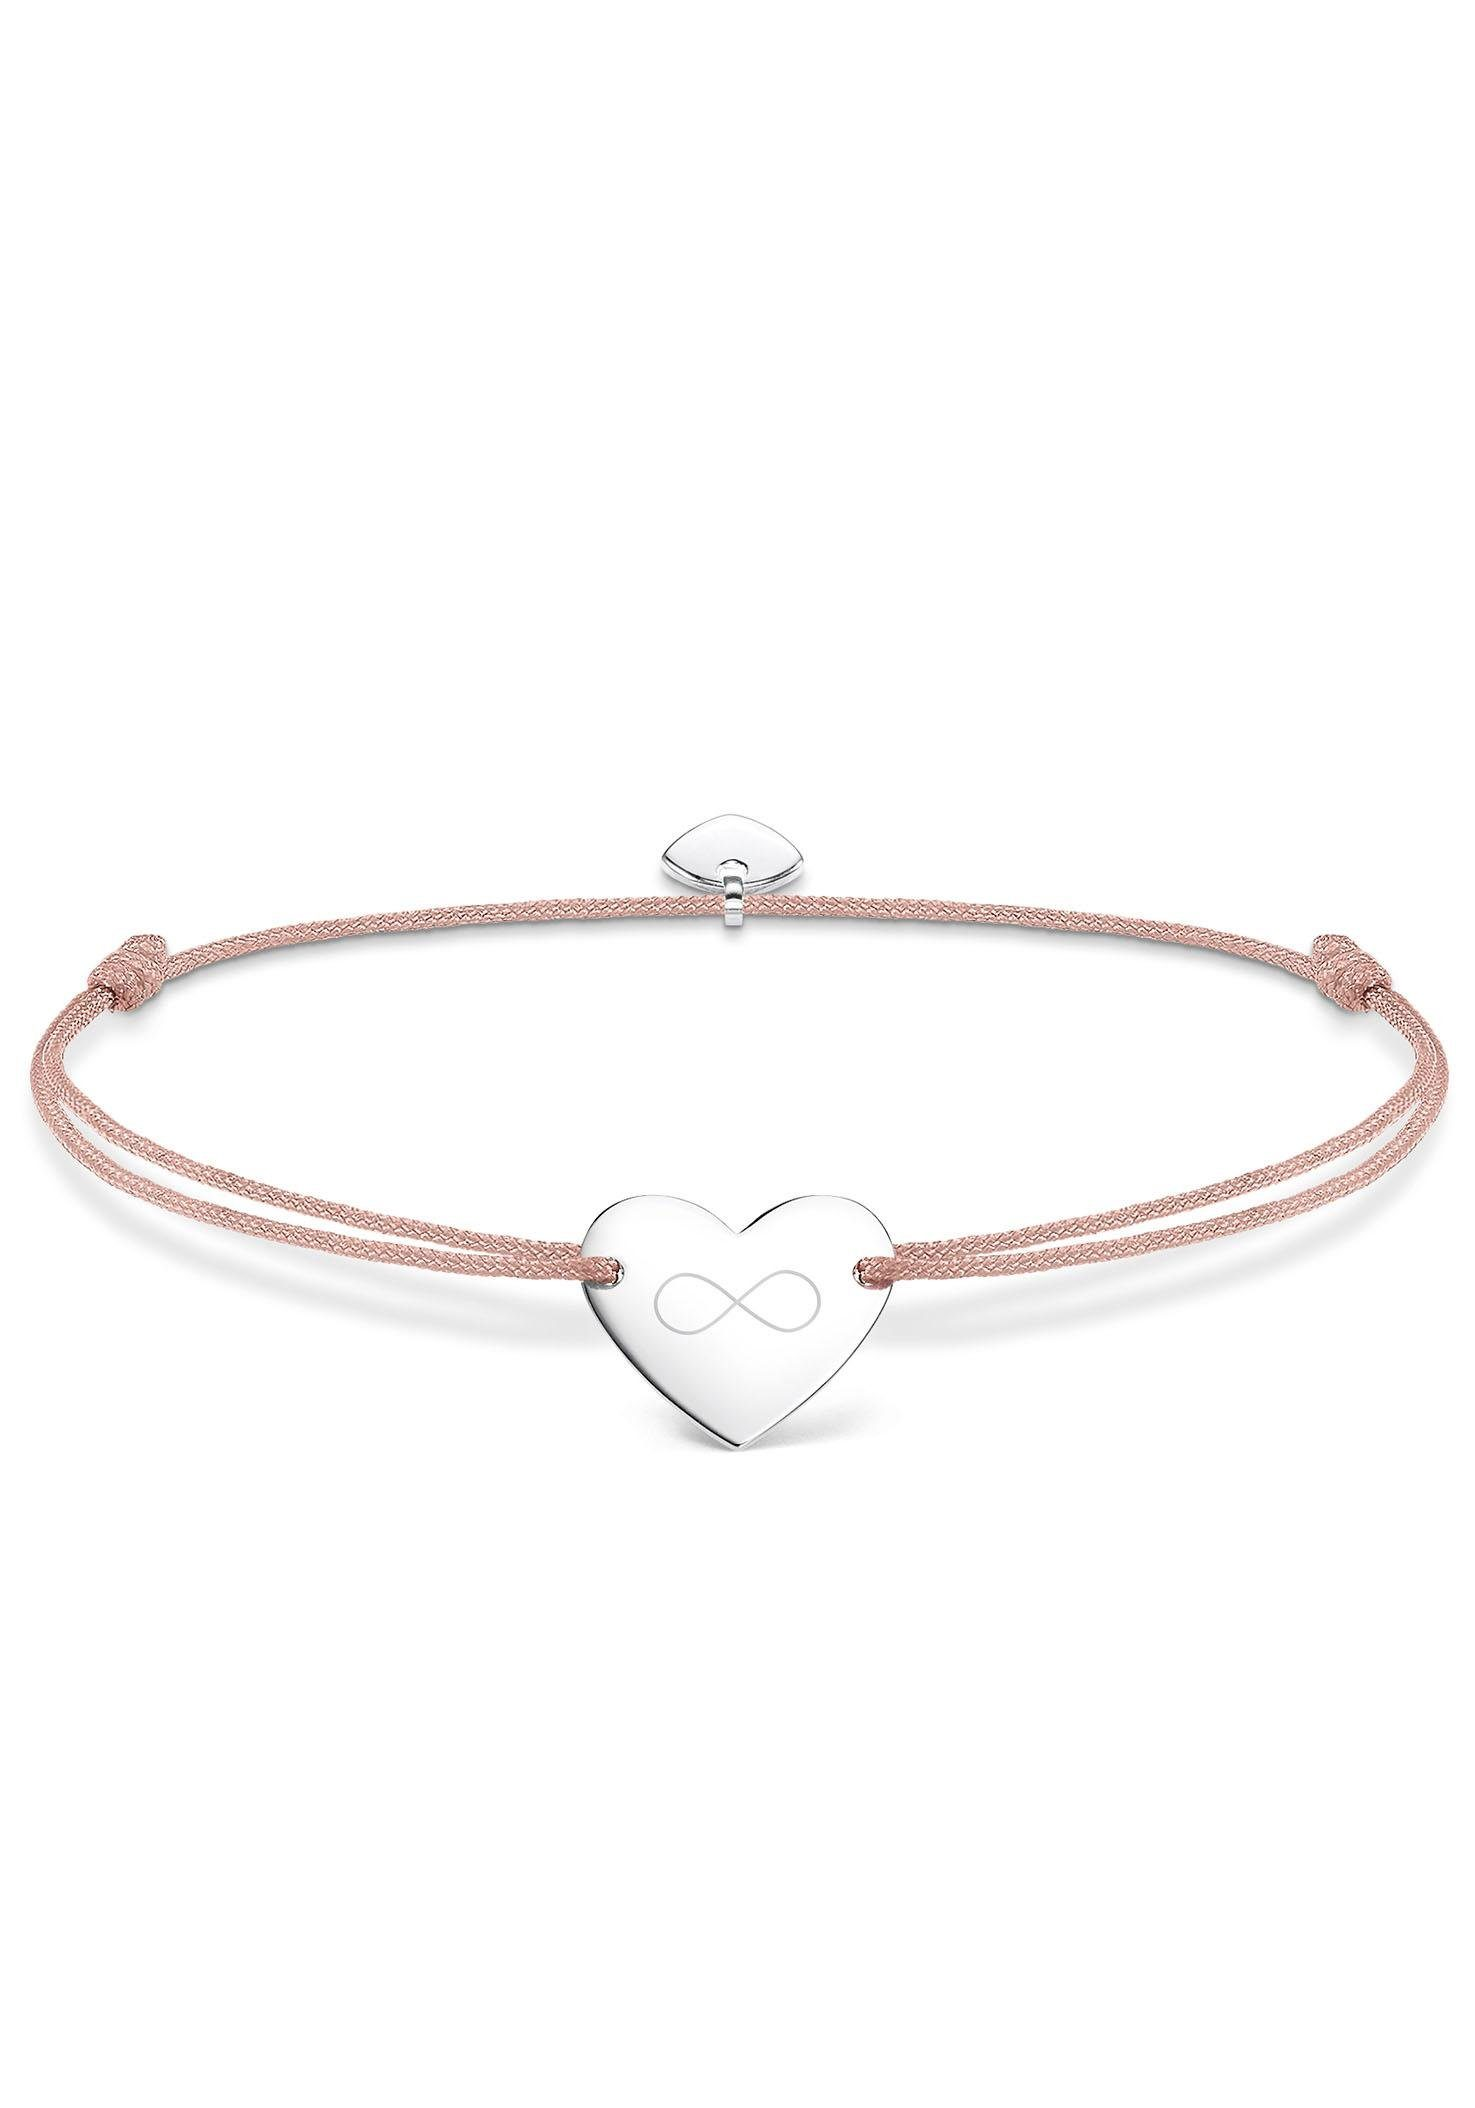 THOMAS SABO Armband »Herz, Little Secret, LS004-173-19-L20v«